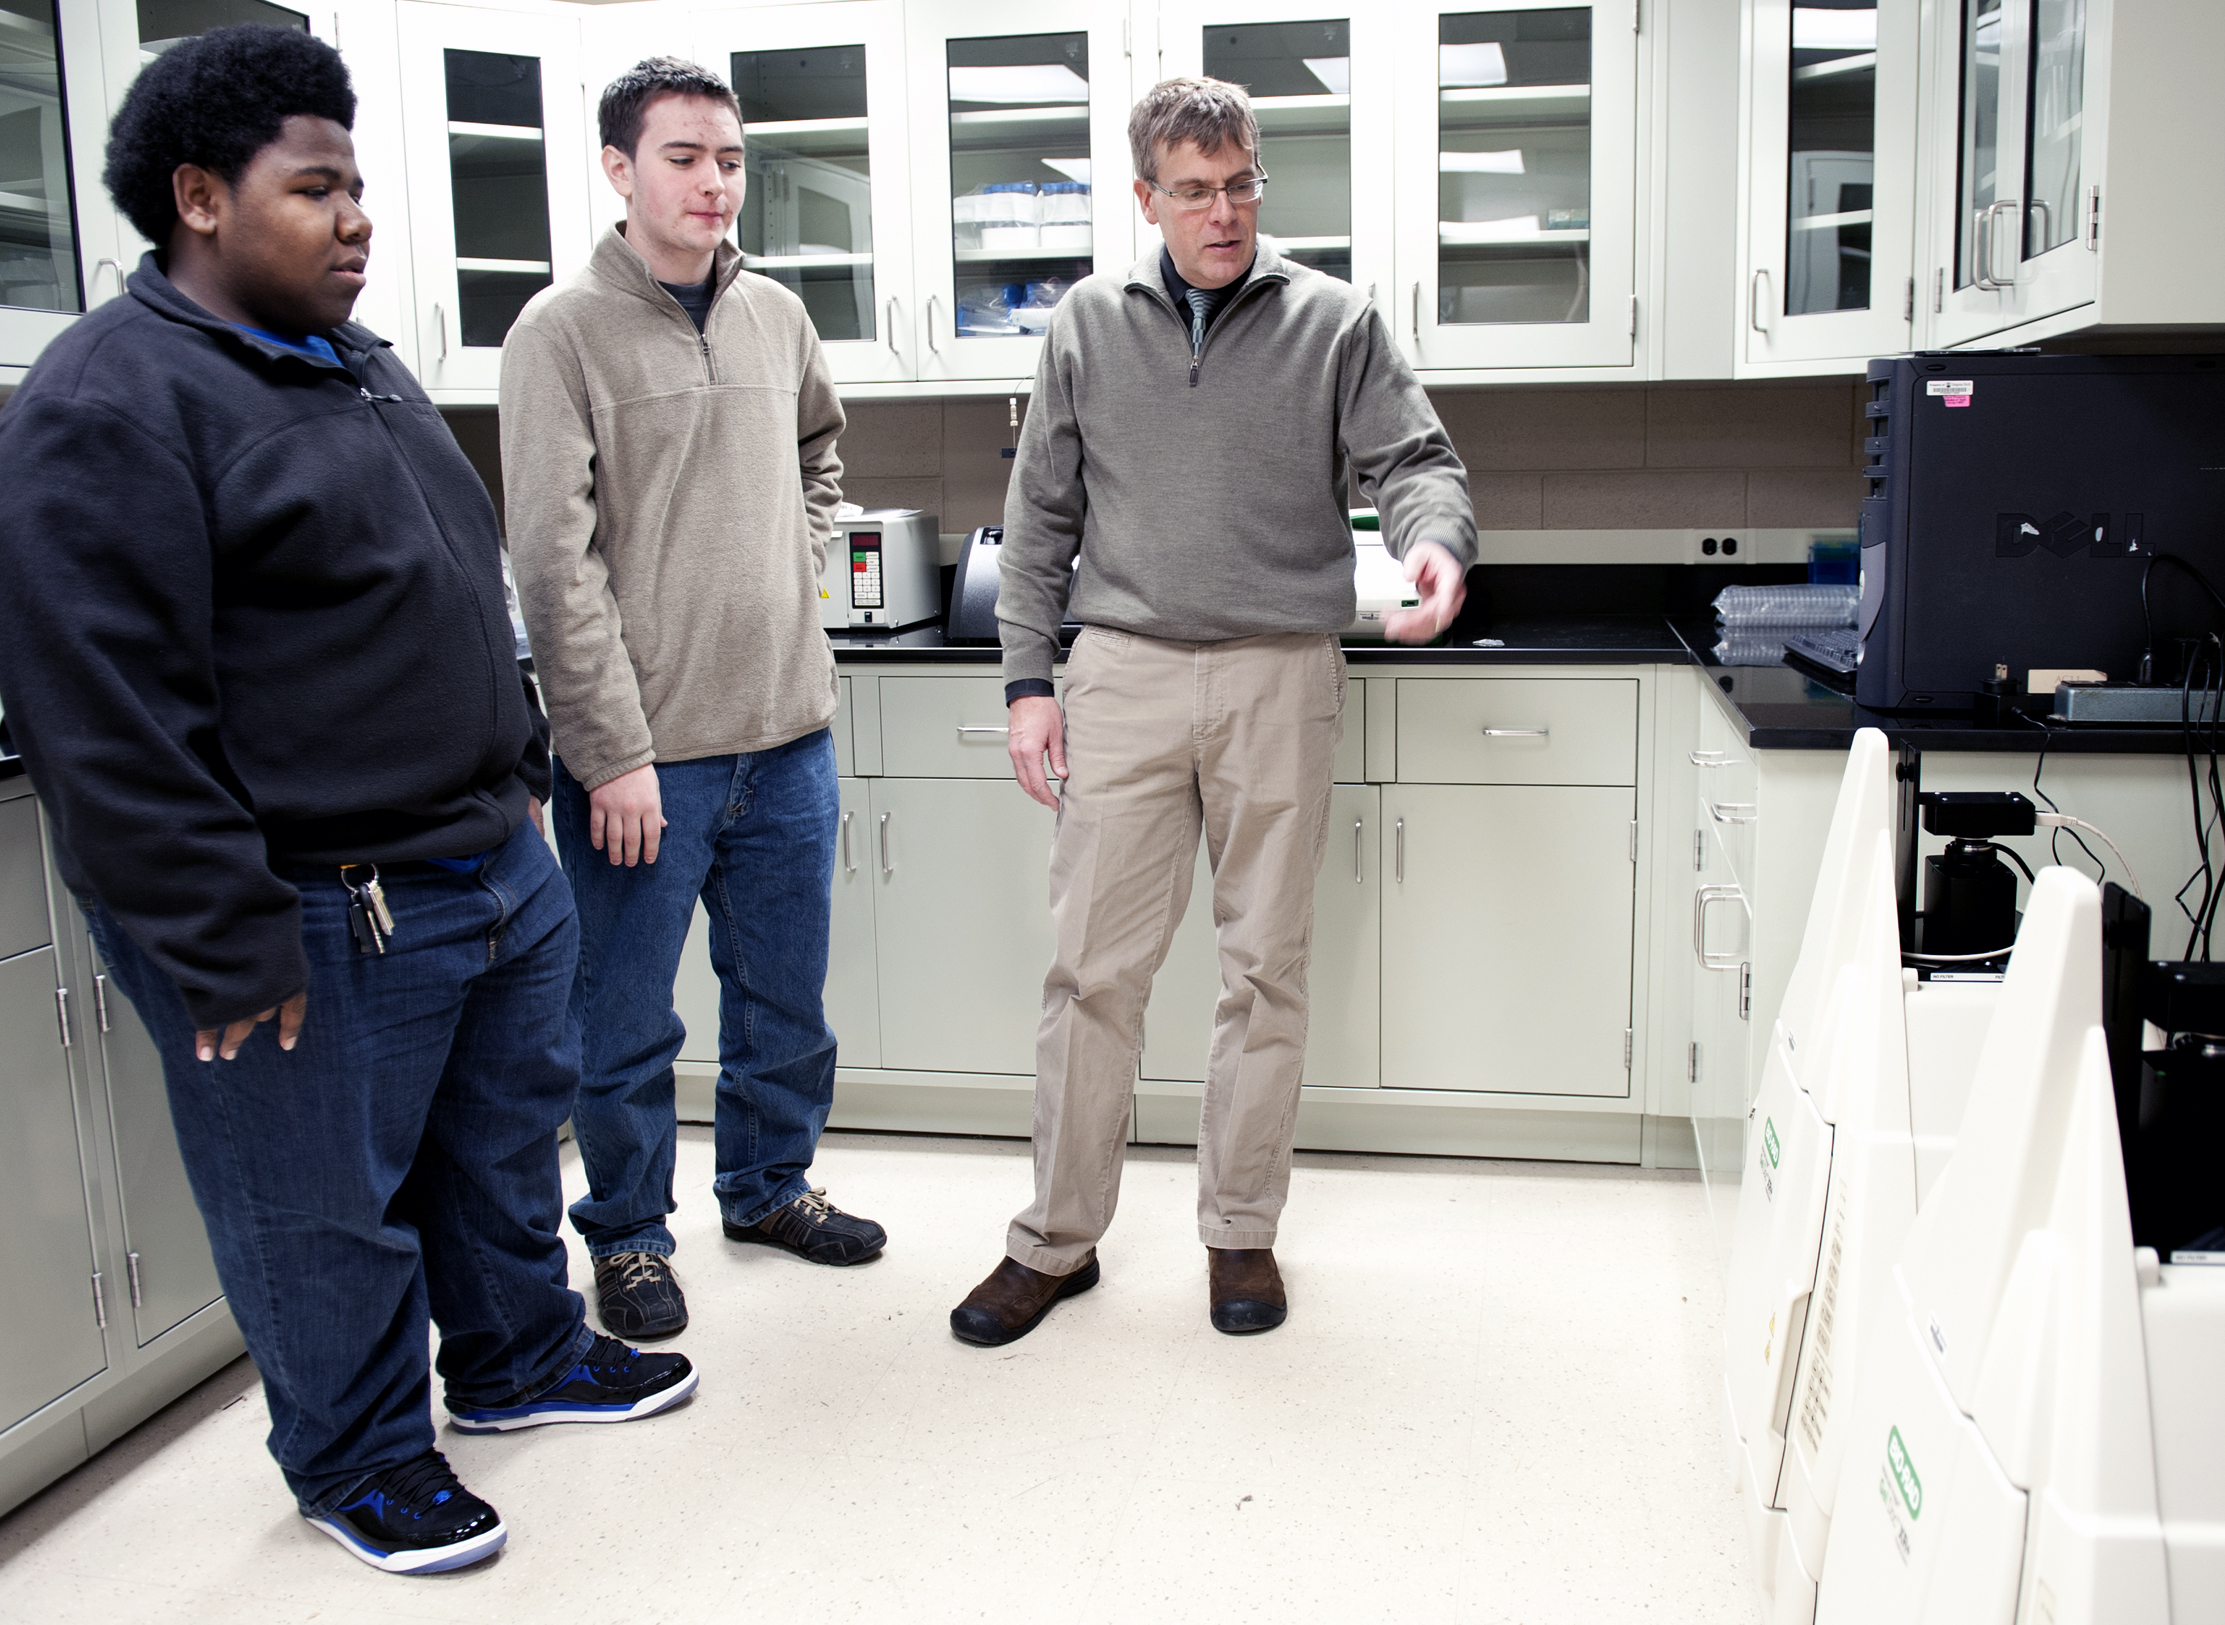 Students discuss cell culture lab equipment with a faculty member